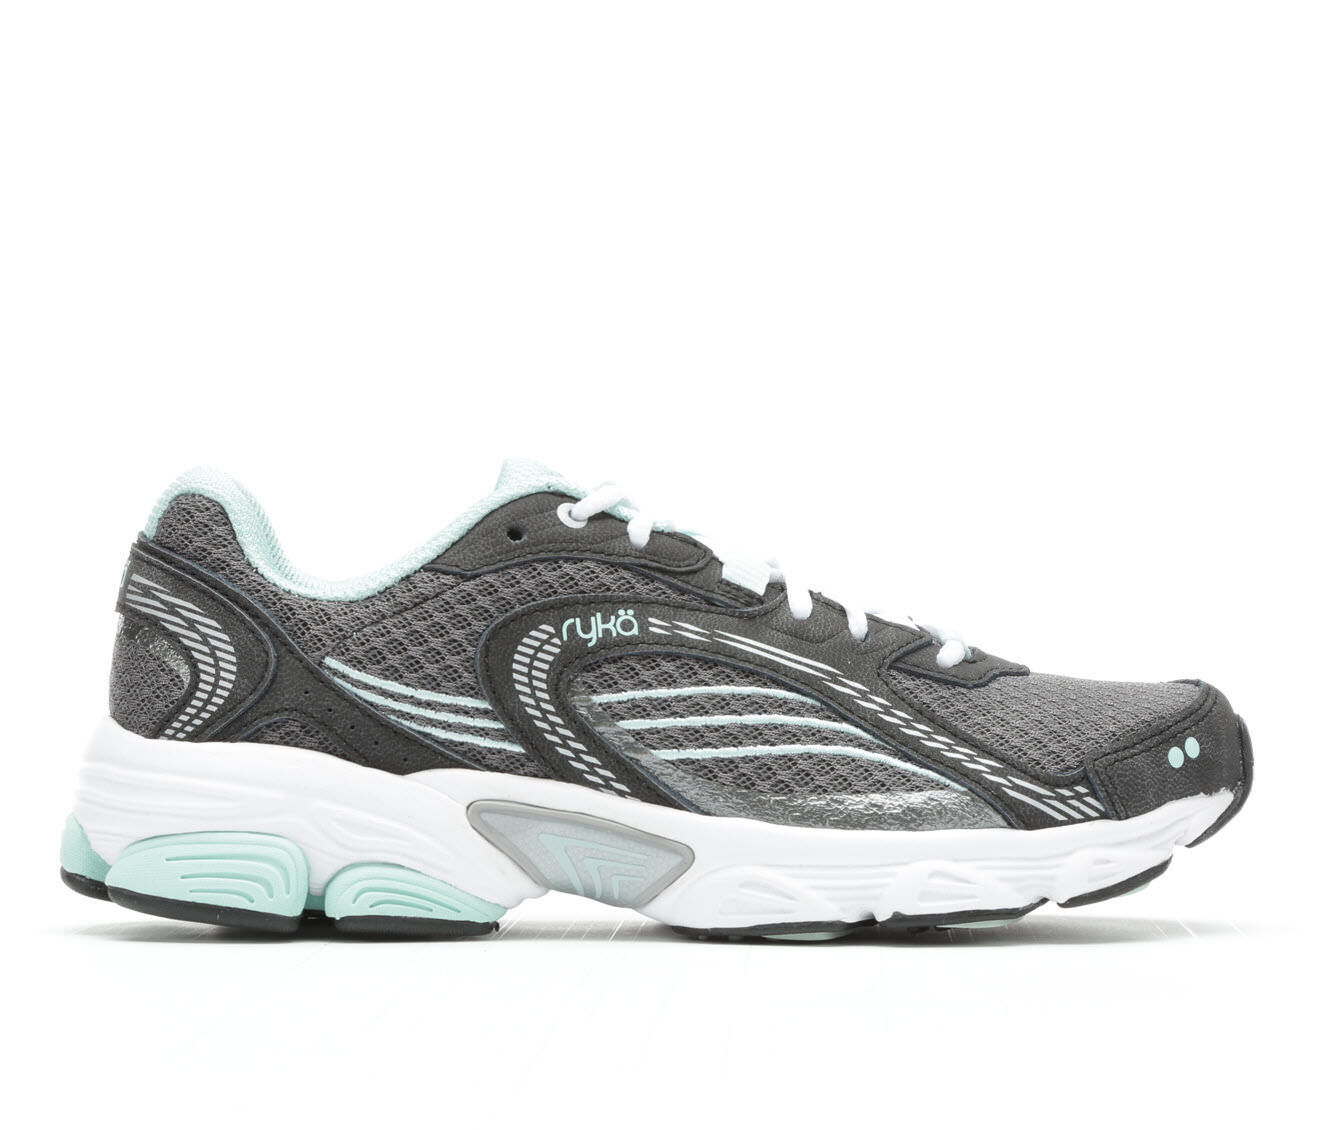 largest discount Women's Ryka Ultimate Running Shoes Grey/Mint/Silv